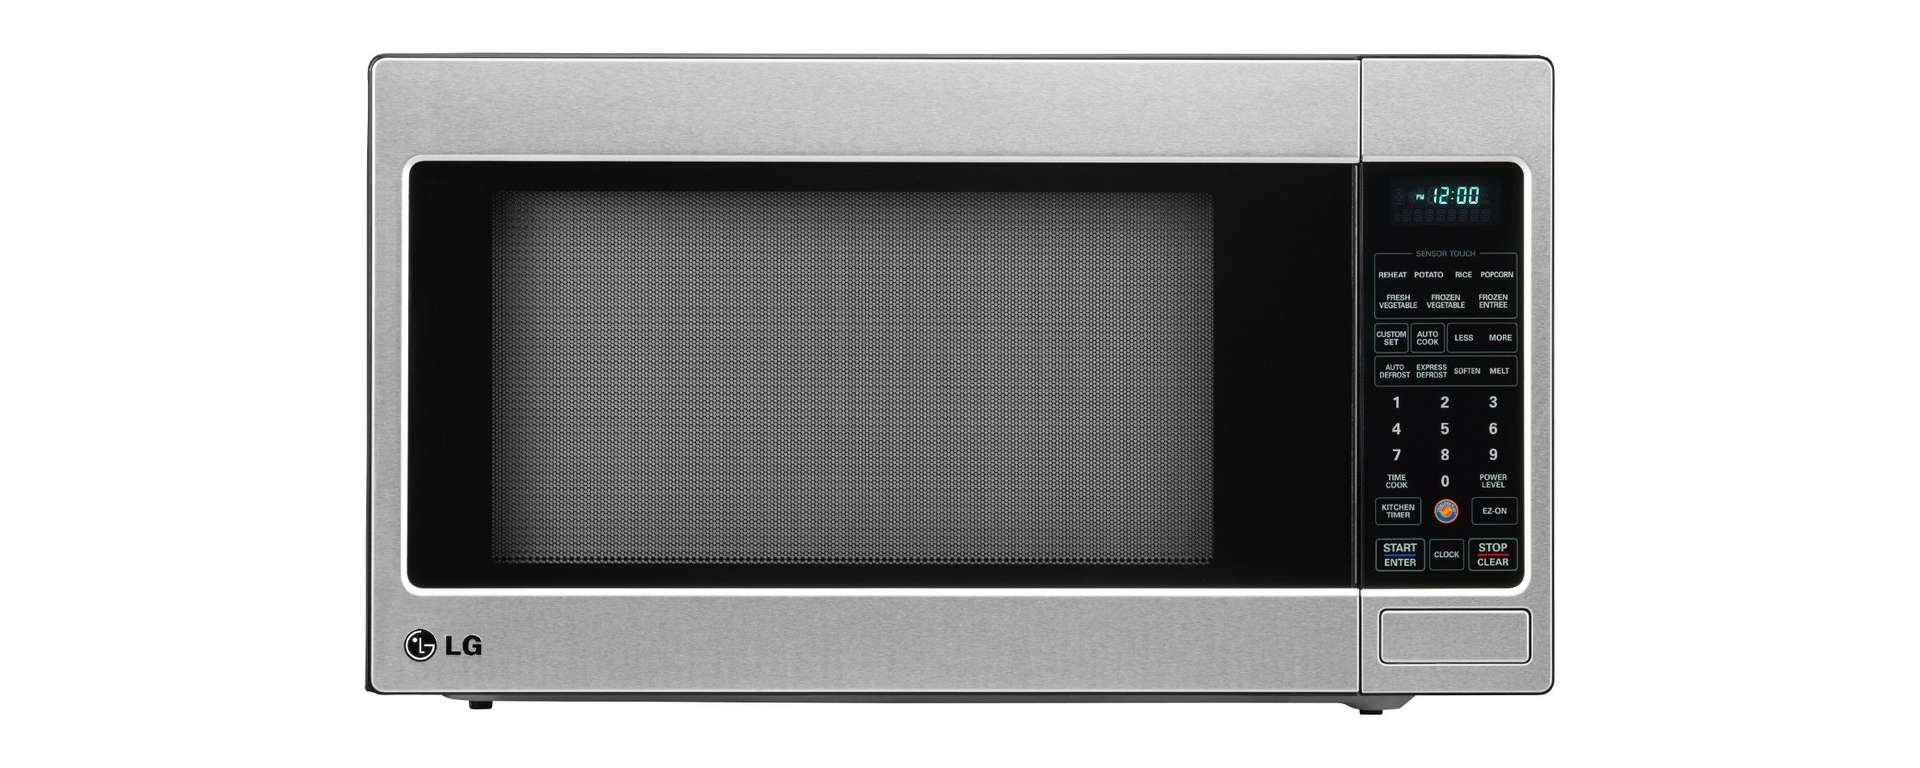 microwave cu amazon oven com lg kitchen with dining easyclean ft countertop dp white